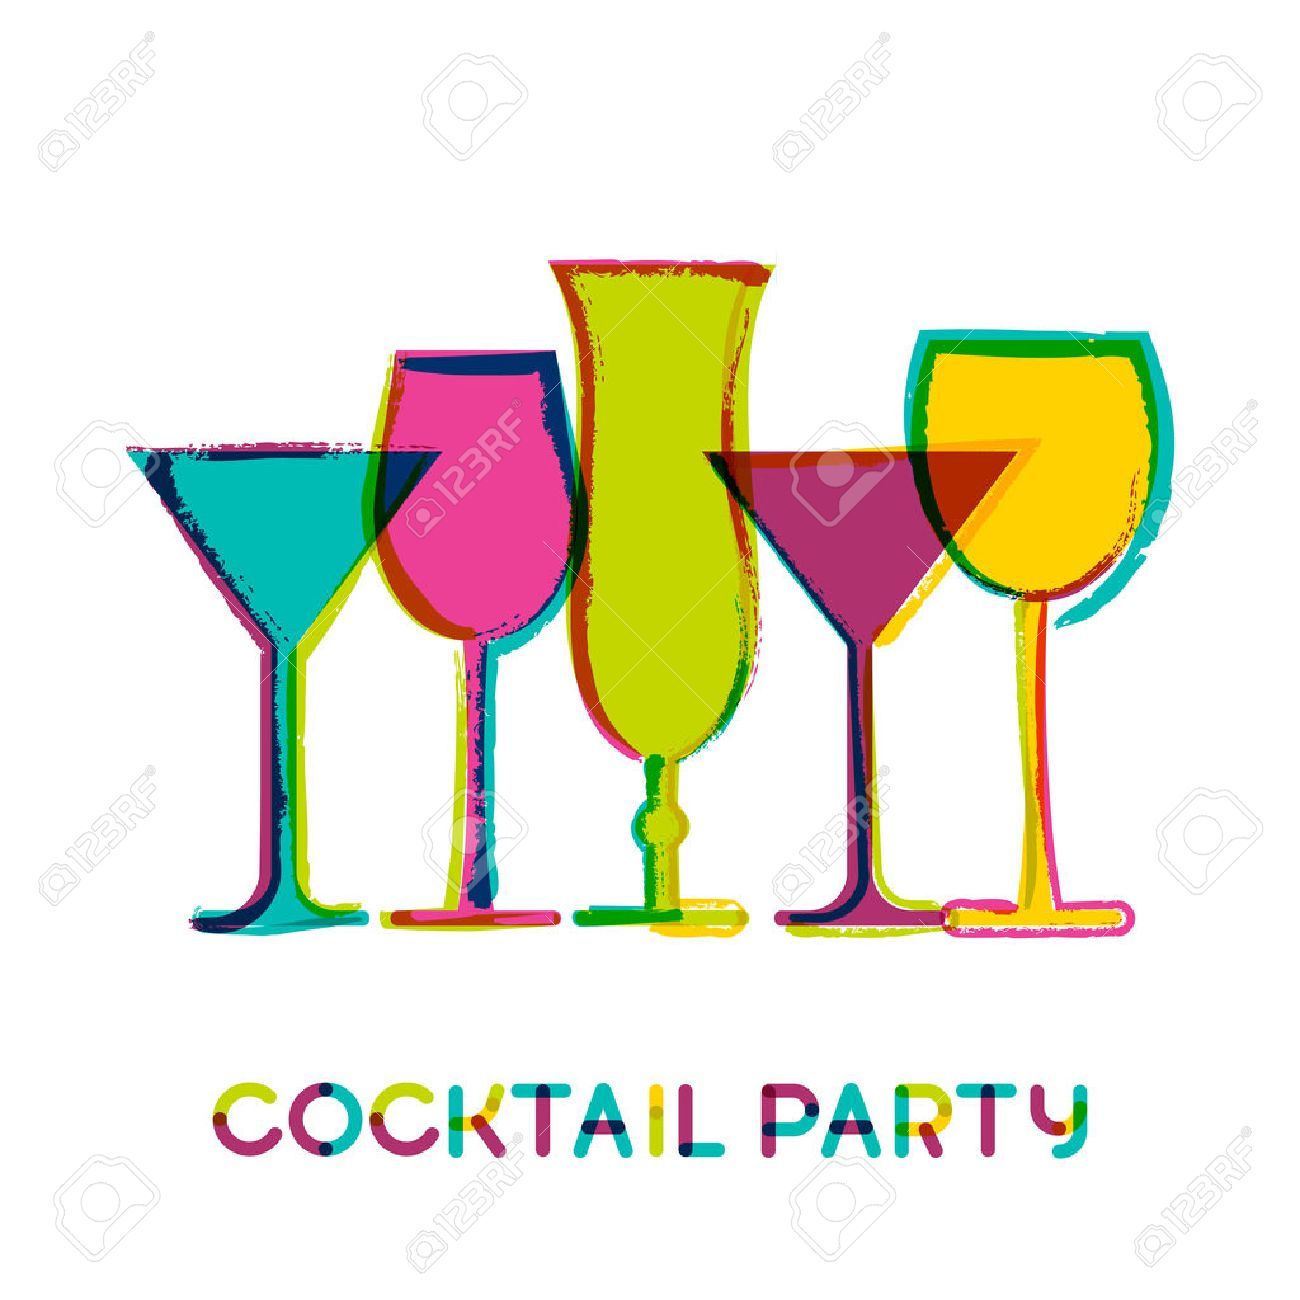 Abstract colorful cocktail glasses, vector watercolor background. Concept for bar menu, party, alcohol drinks, wine list. Creative trendy design for flyer, brochure, poster, banner. - 44568482